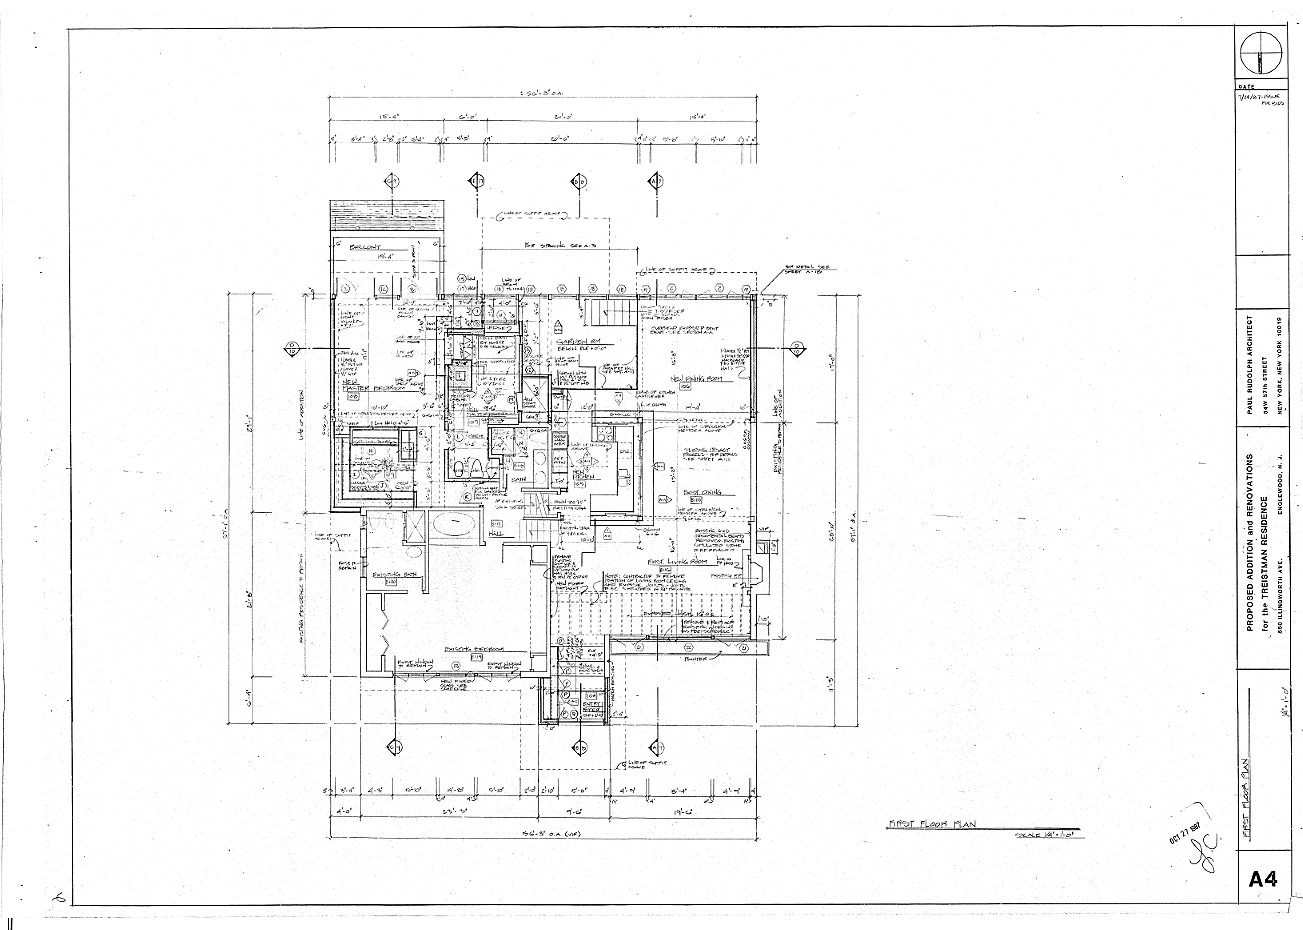 Residence for Mr. and Mrs. Treistman, Englewood, New Jersey. First Floor Plan, Sheet A4.